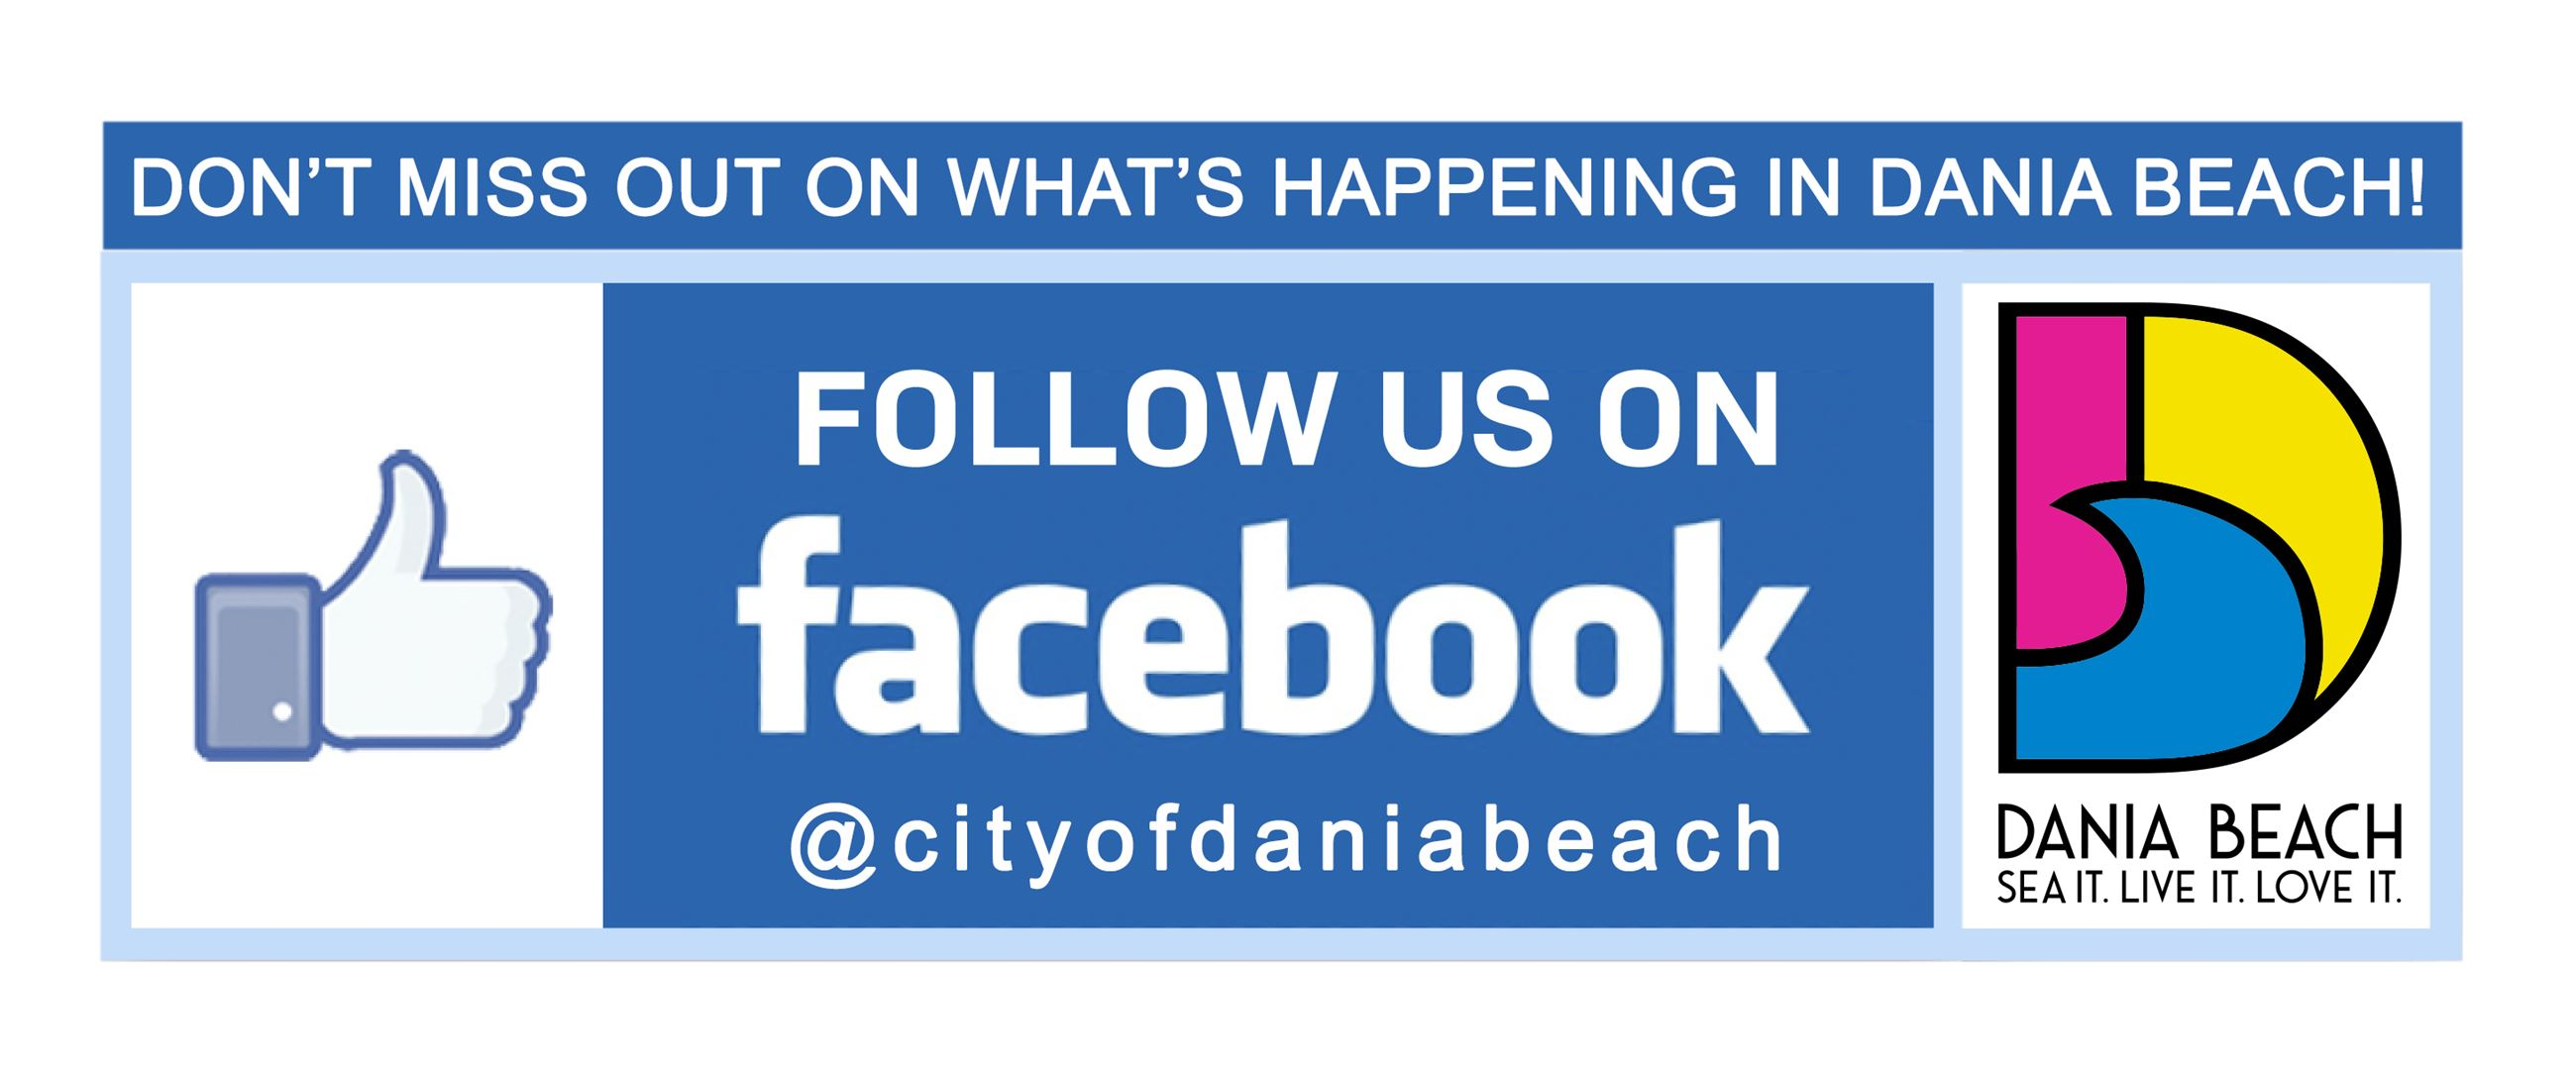 Follow us on Facebook @cityofdaniabeach